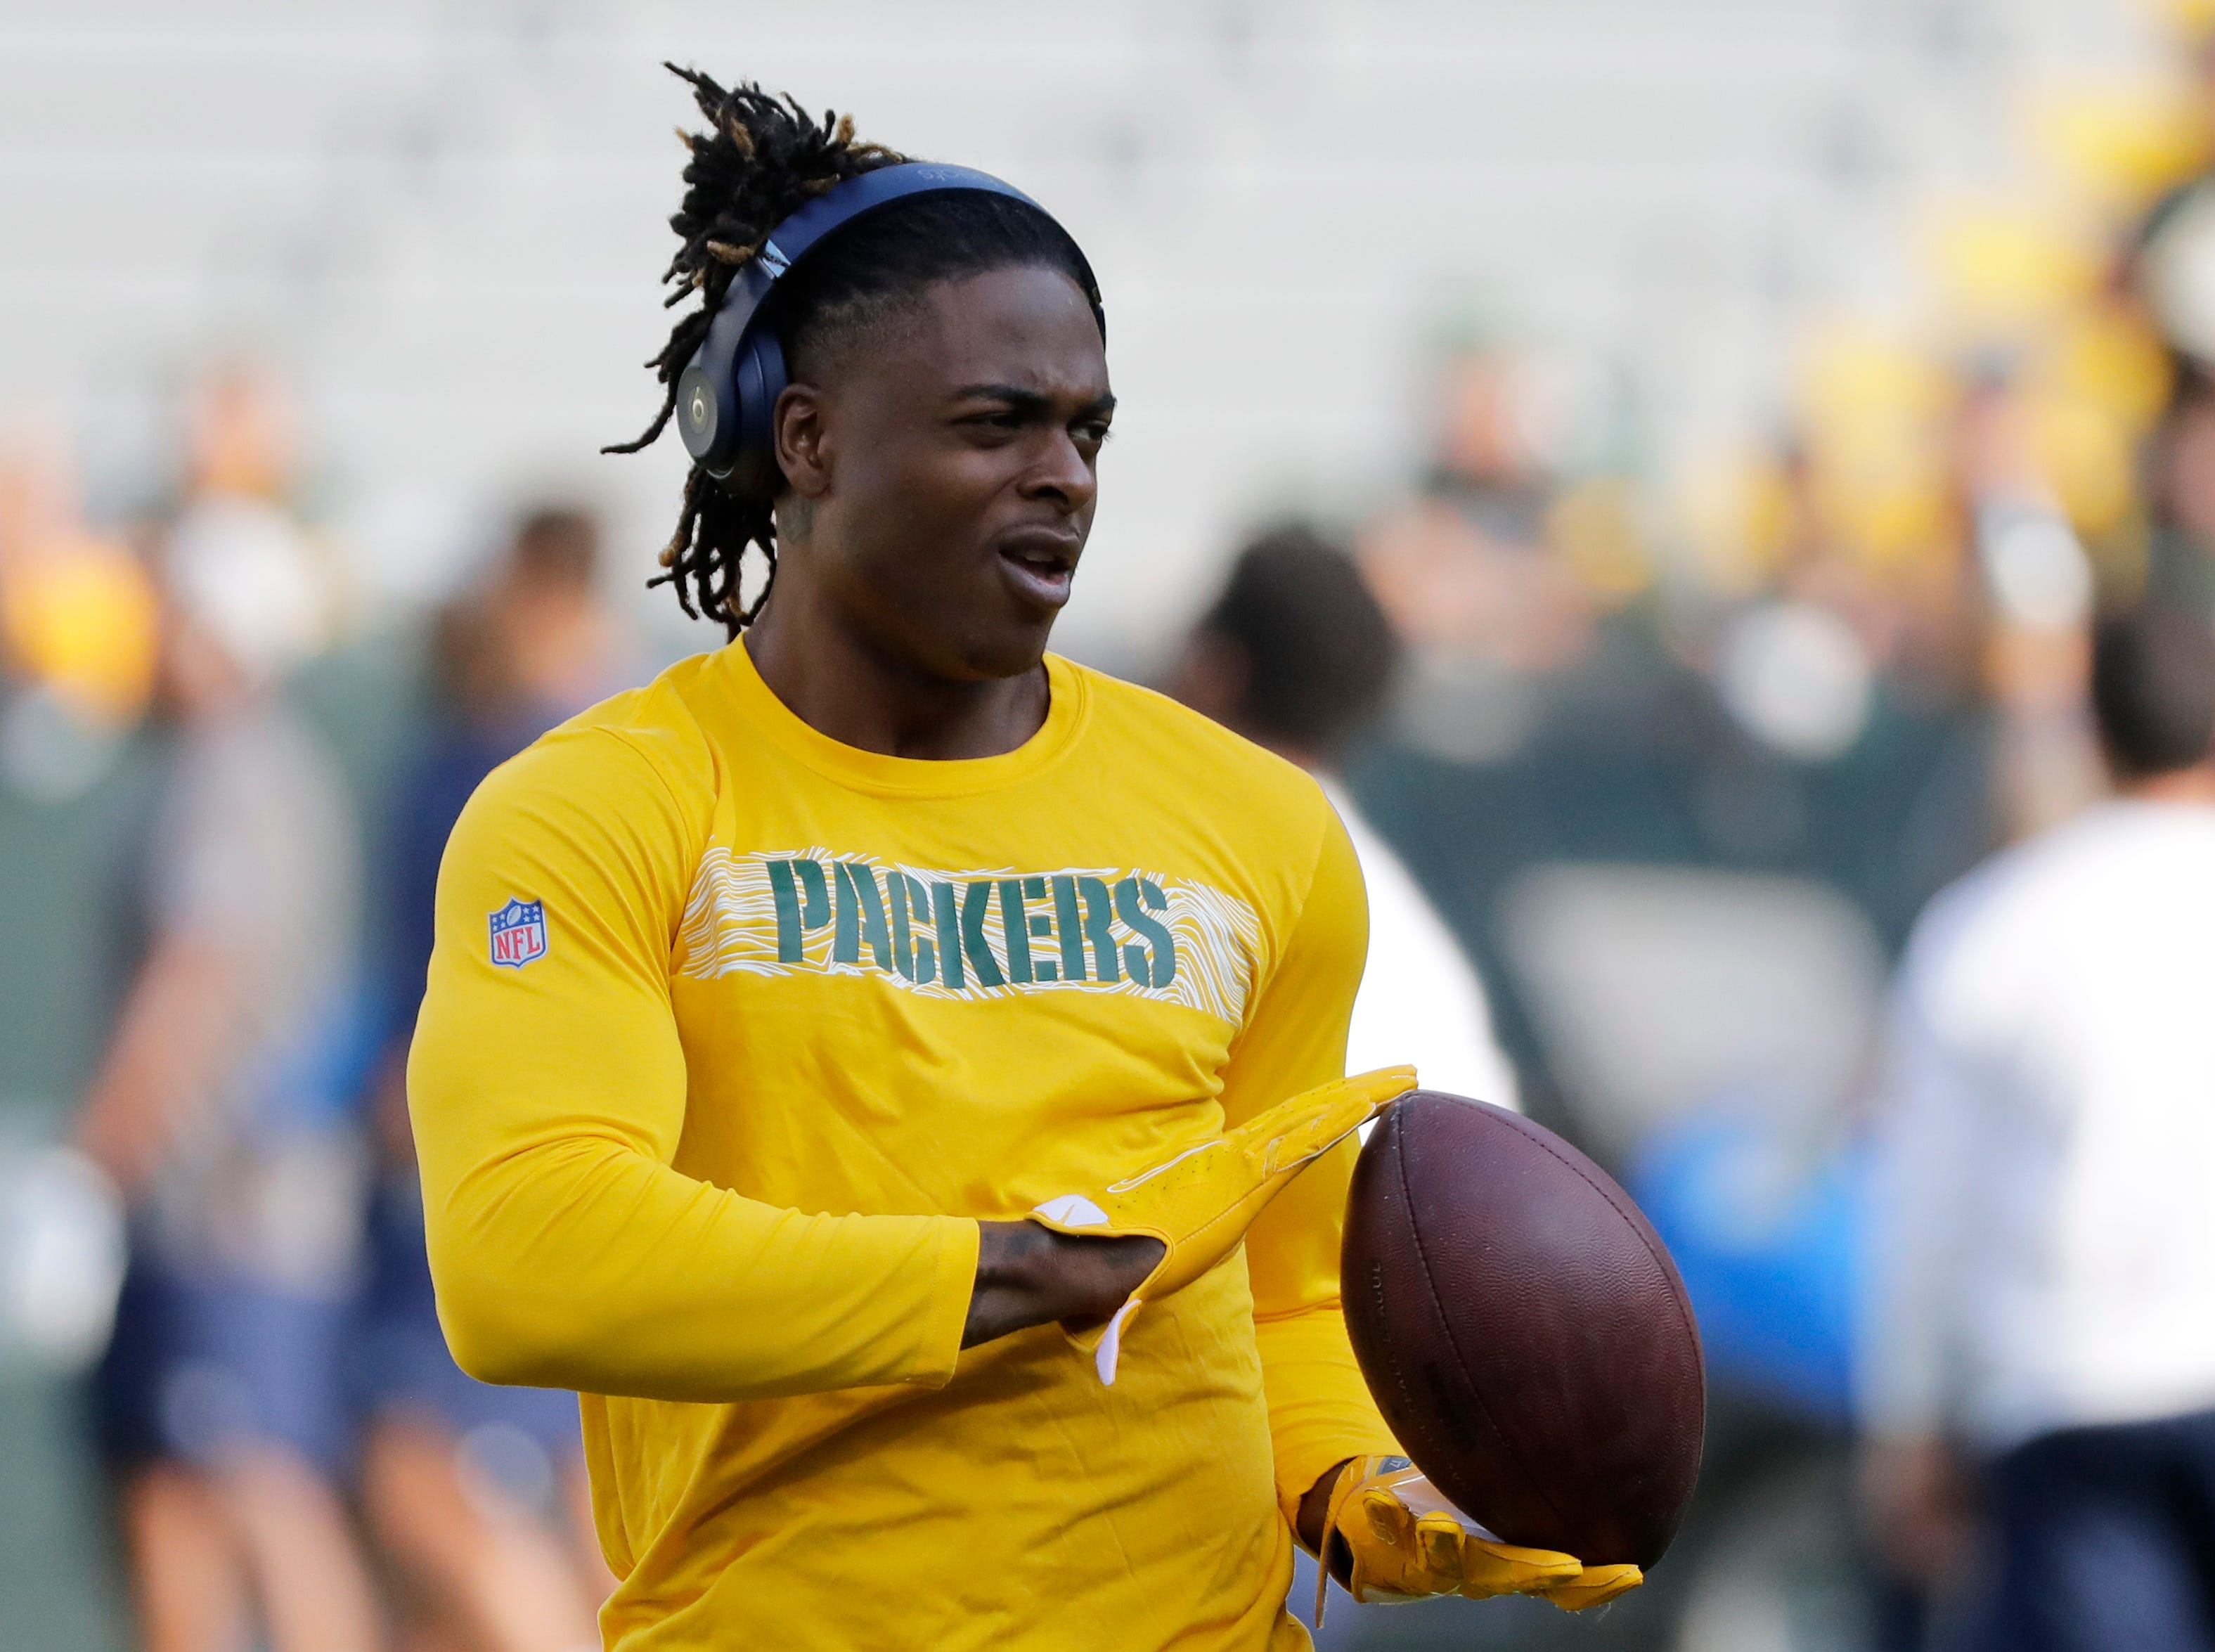 Green Bay Packers wide receiver Davante Adams (17) warms up before a NFL preseason game at Lambeau Field on Thursday, August 9, 2018 in Green Bay, Wis.